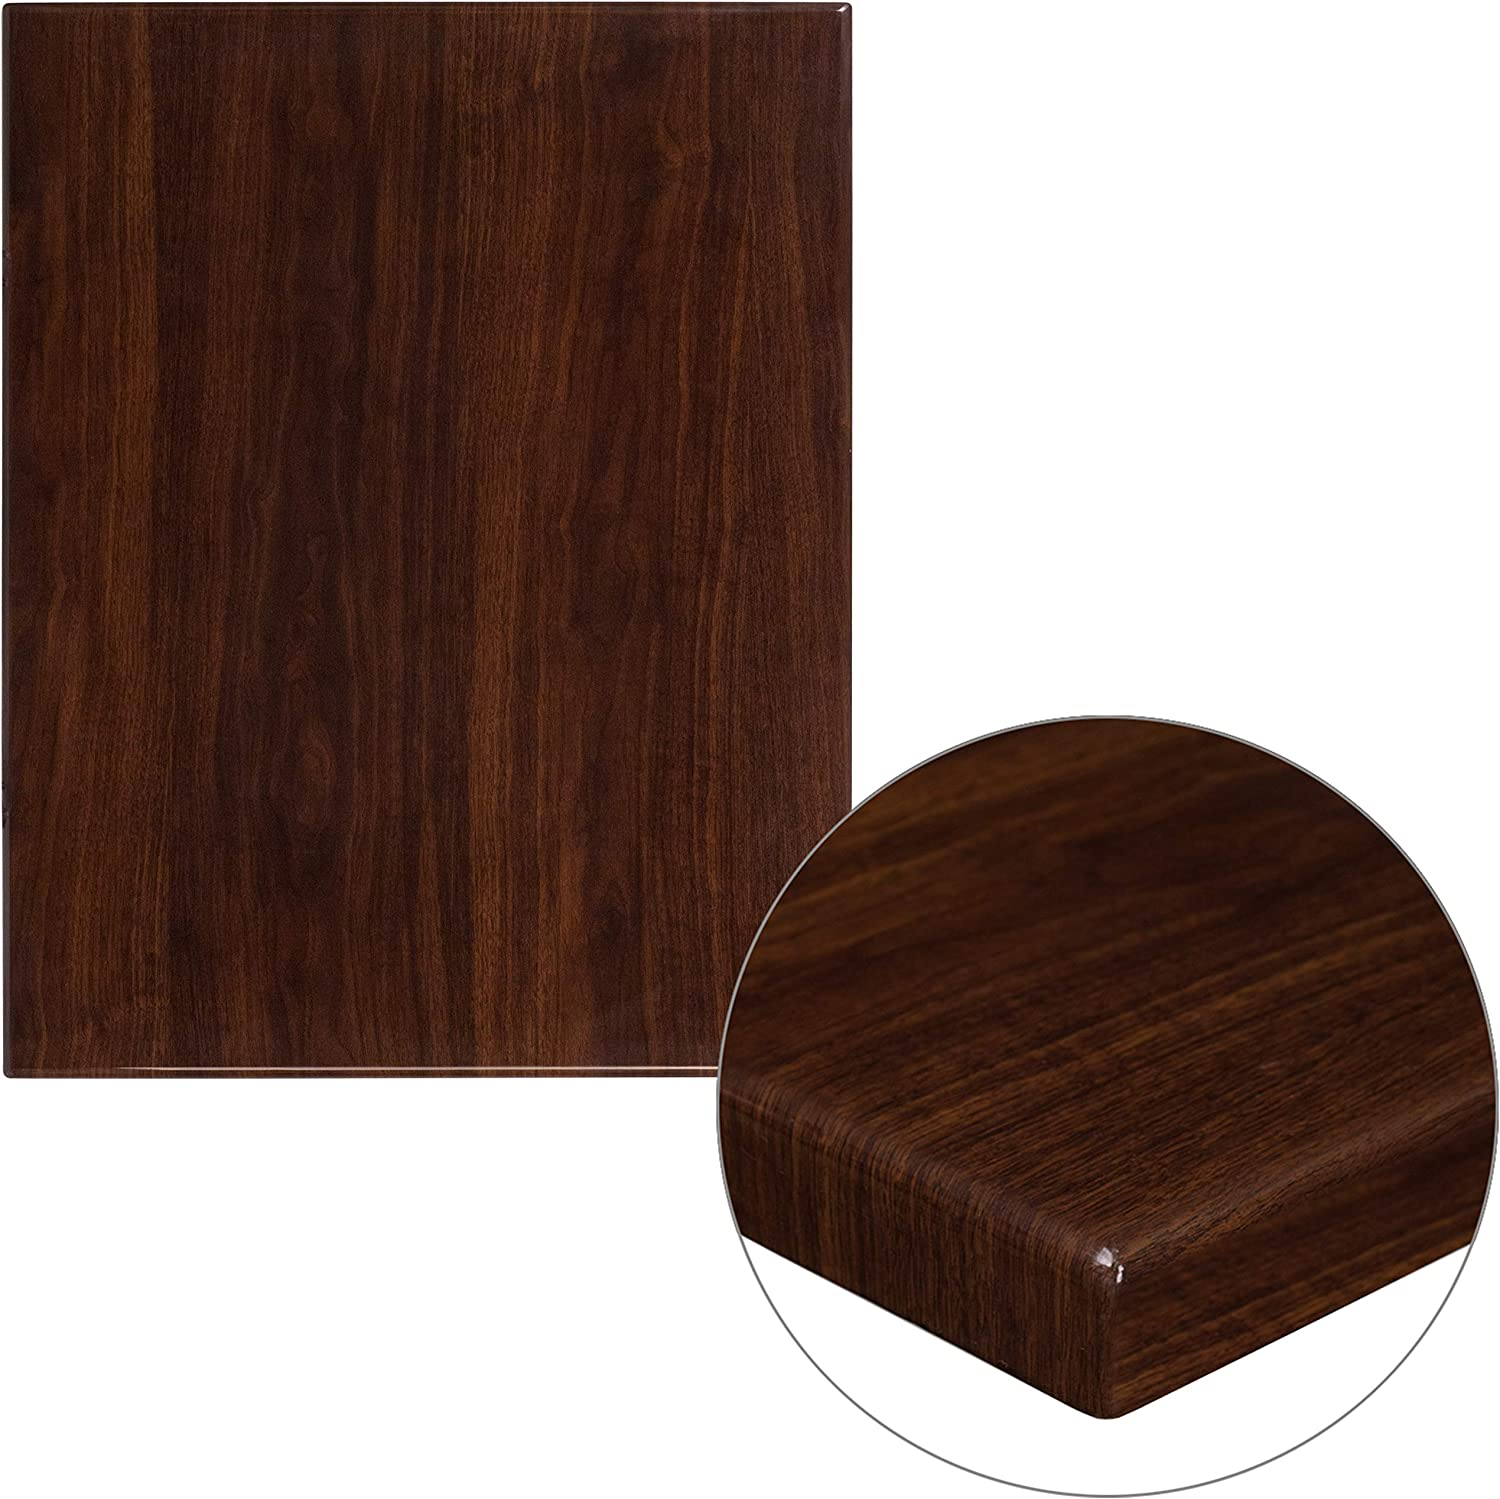 "Flash Furniture 24"" x 30"" Rectangular High-Gloss Walnut Resin Table Top with 2"" Thick Edge"